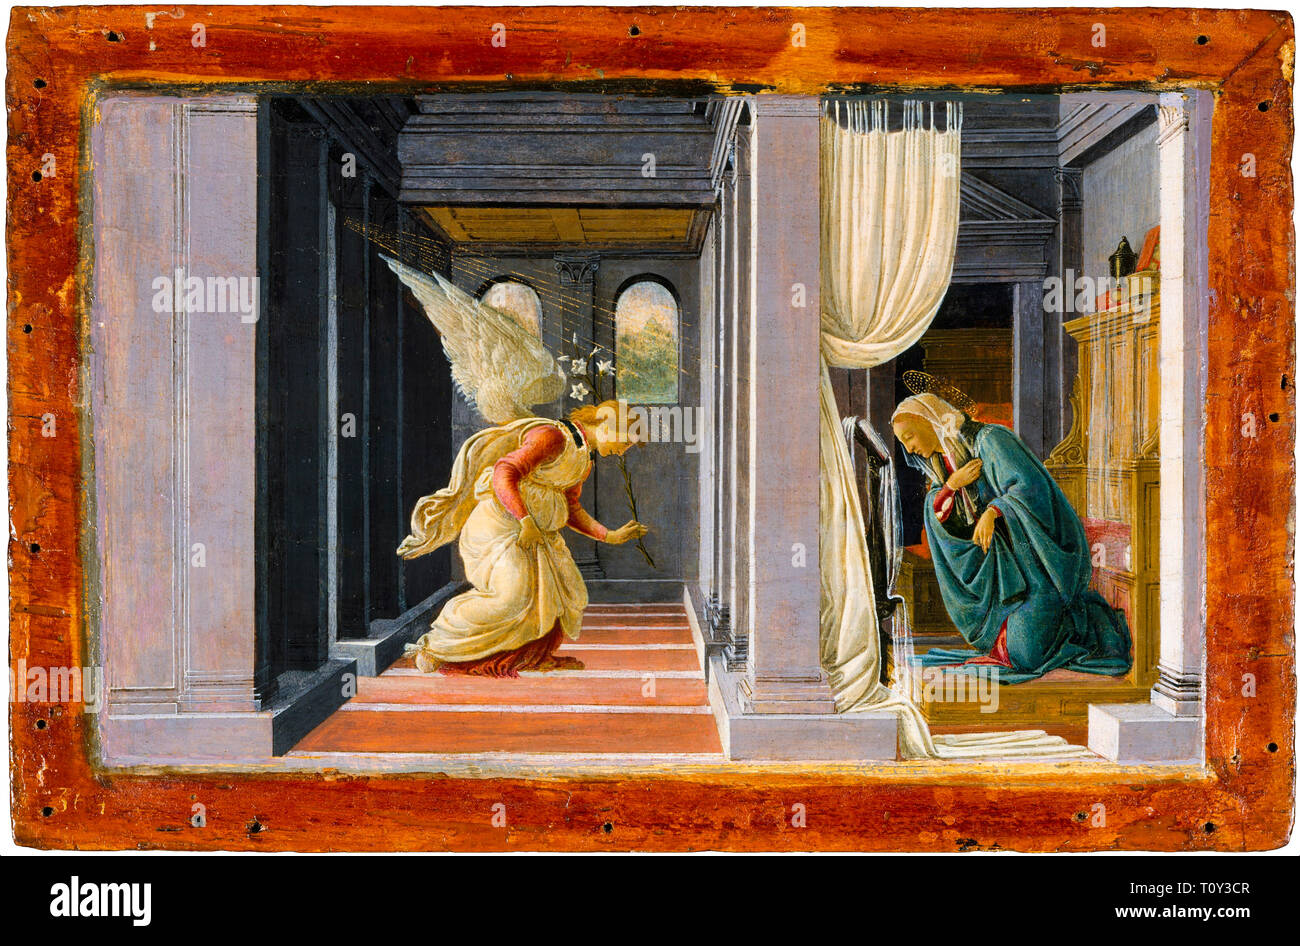 Sandro Botticelli, The Annunciation, painting, c. 1485 - Stock Image